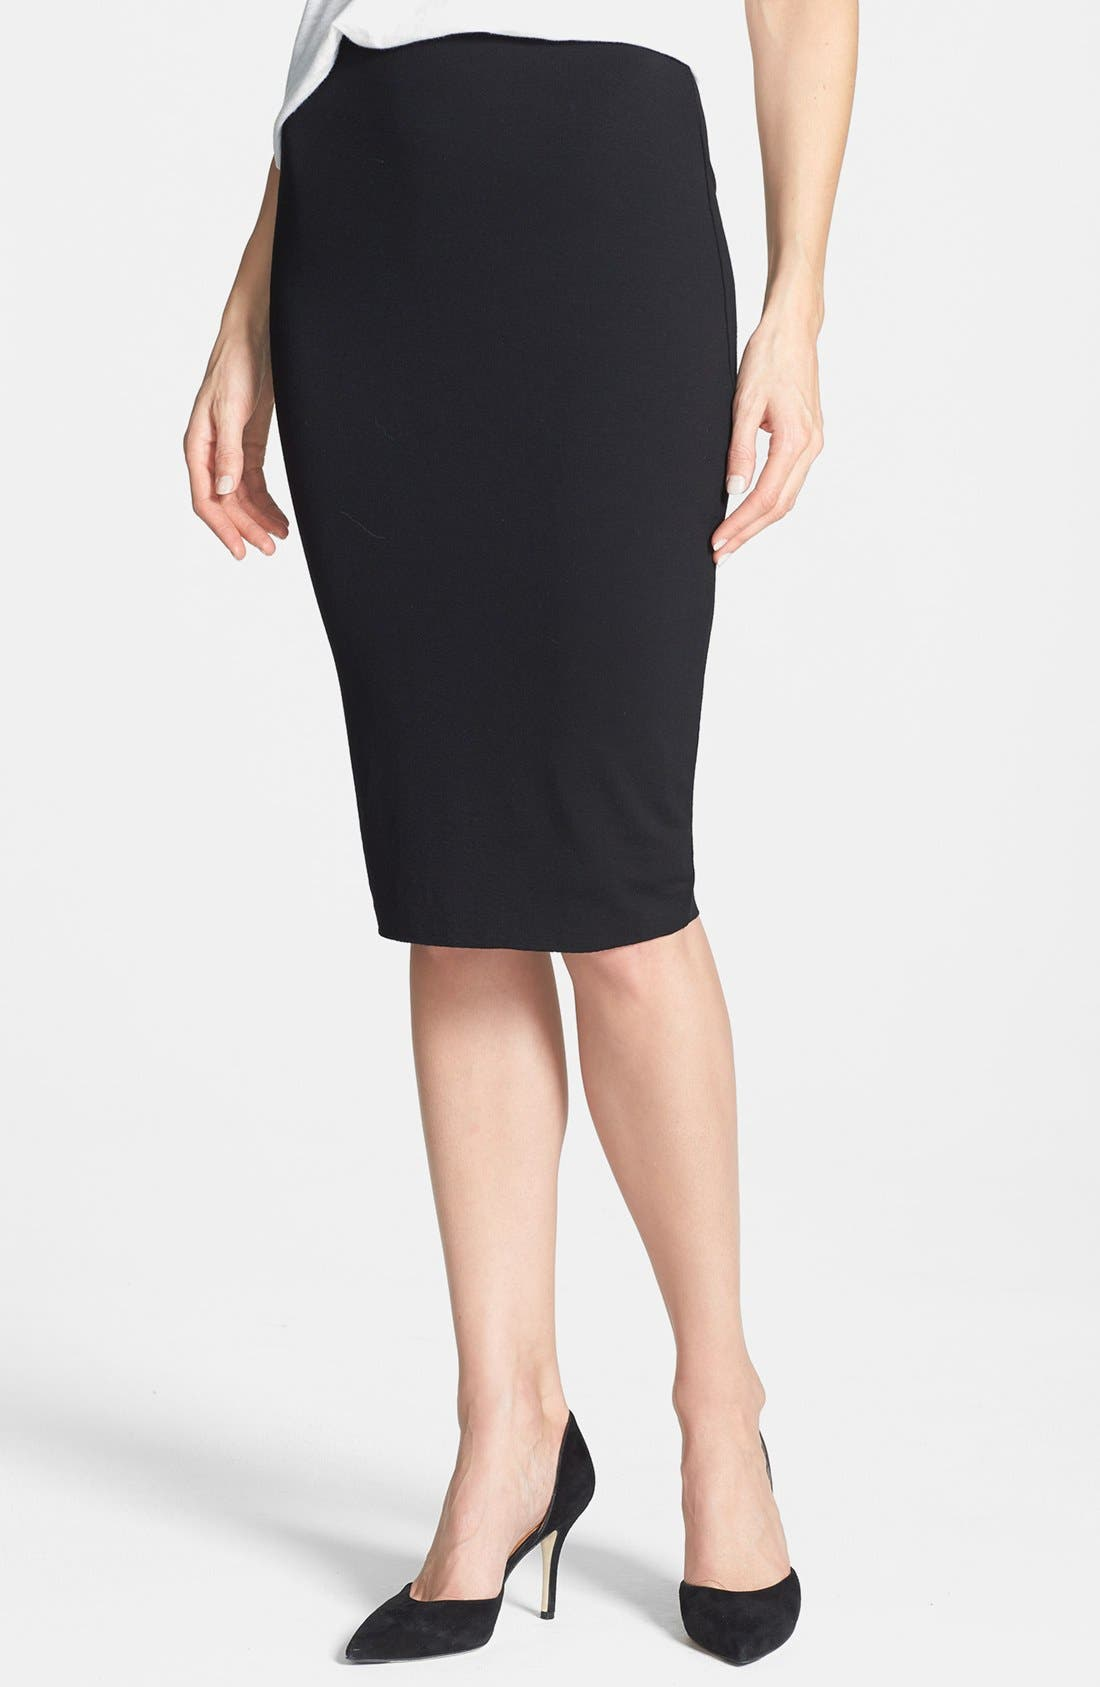 Alternate Image 1 Selected - Vince Camuto Stretch Knit Midi Tube Skirt (Petite)